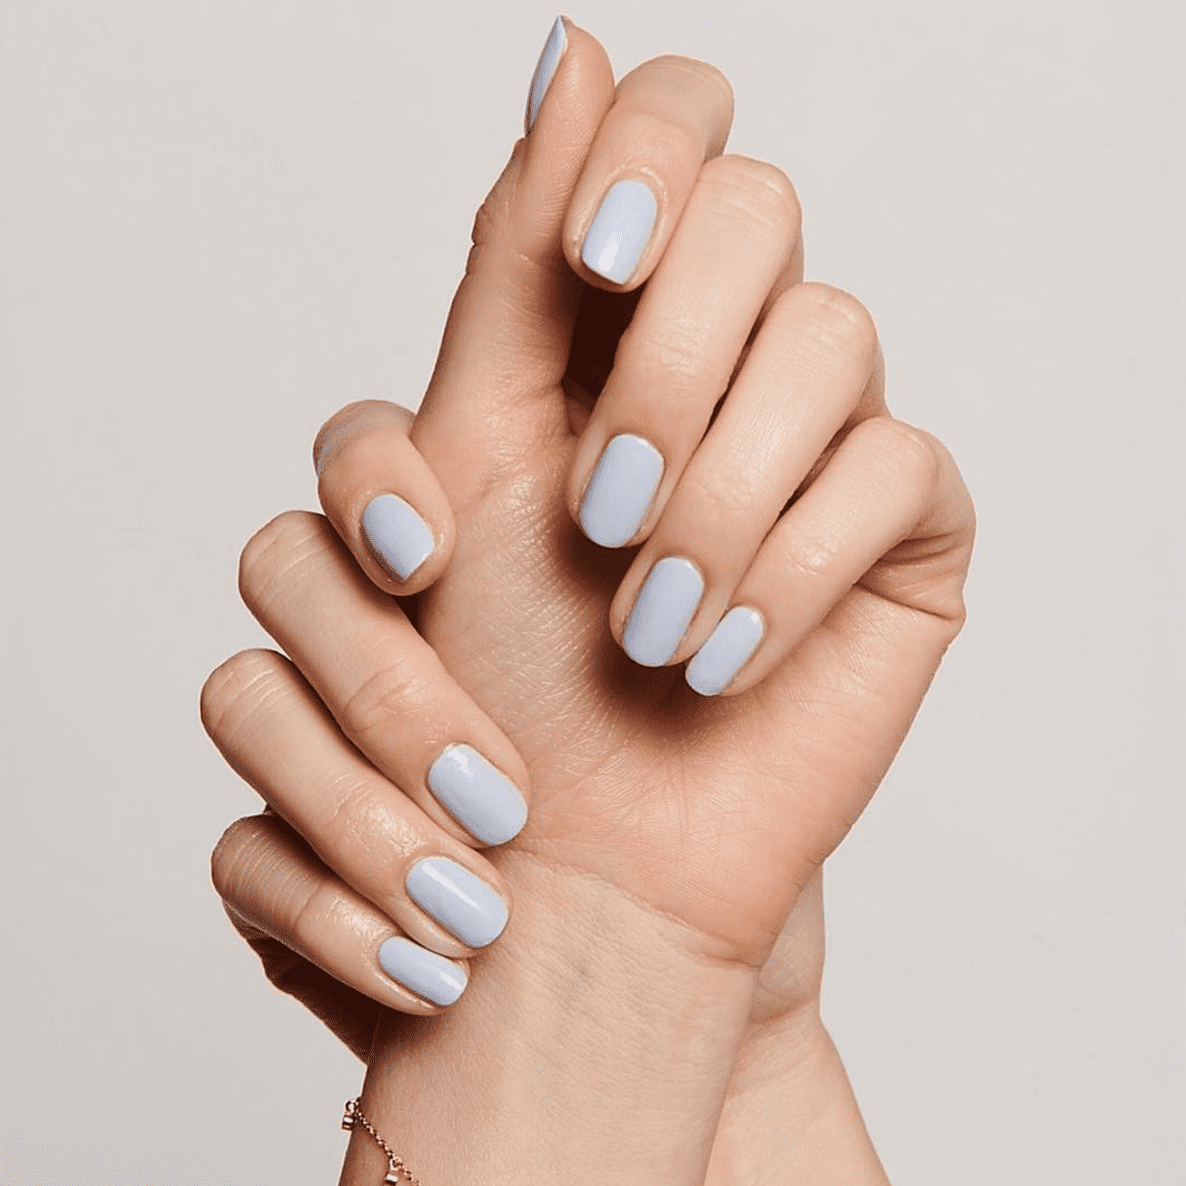 The 20 Best Blue Nail Polish Colors For Any Occasion